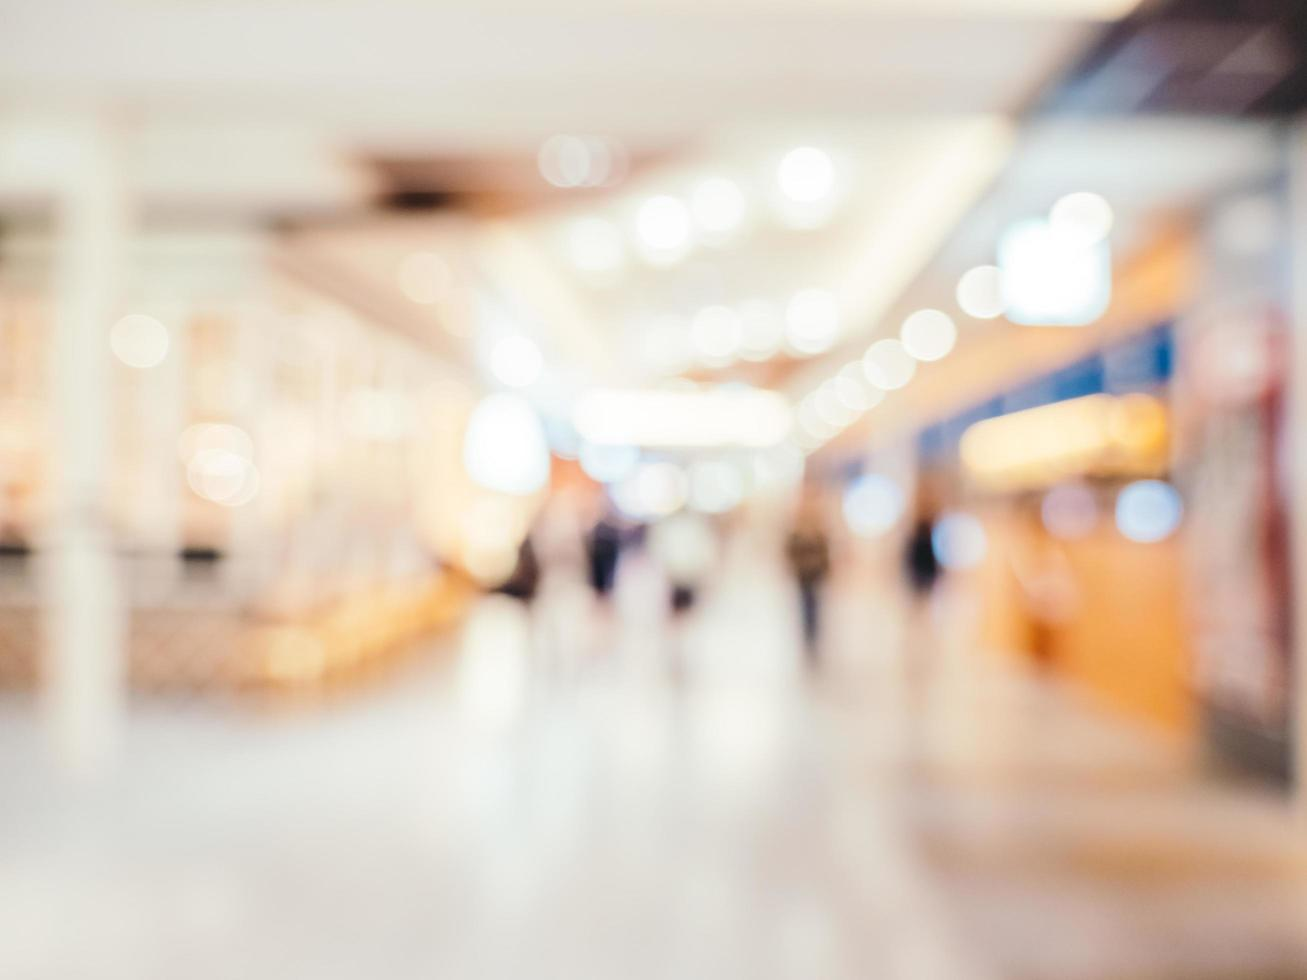 Abstract blur and defocused shopping mall background photo